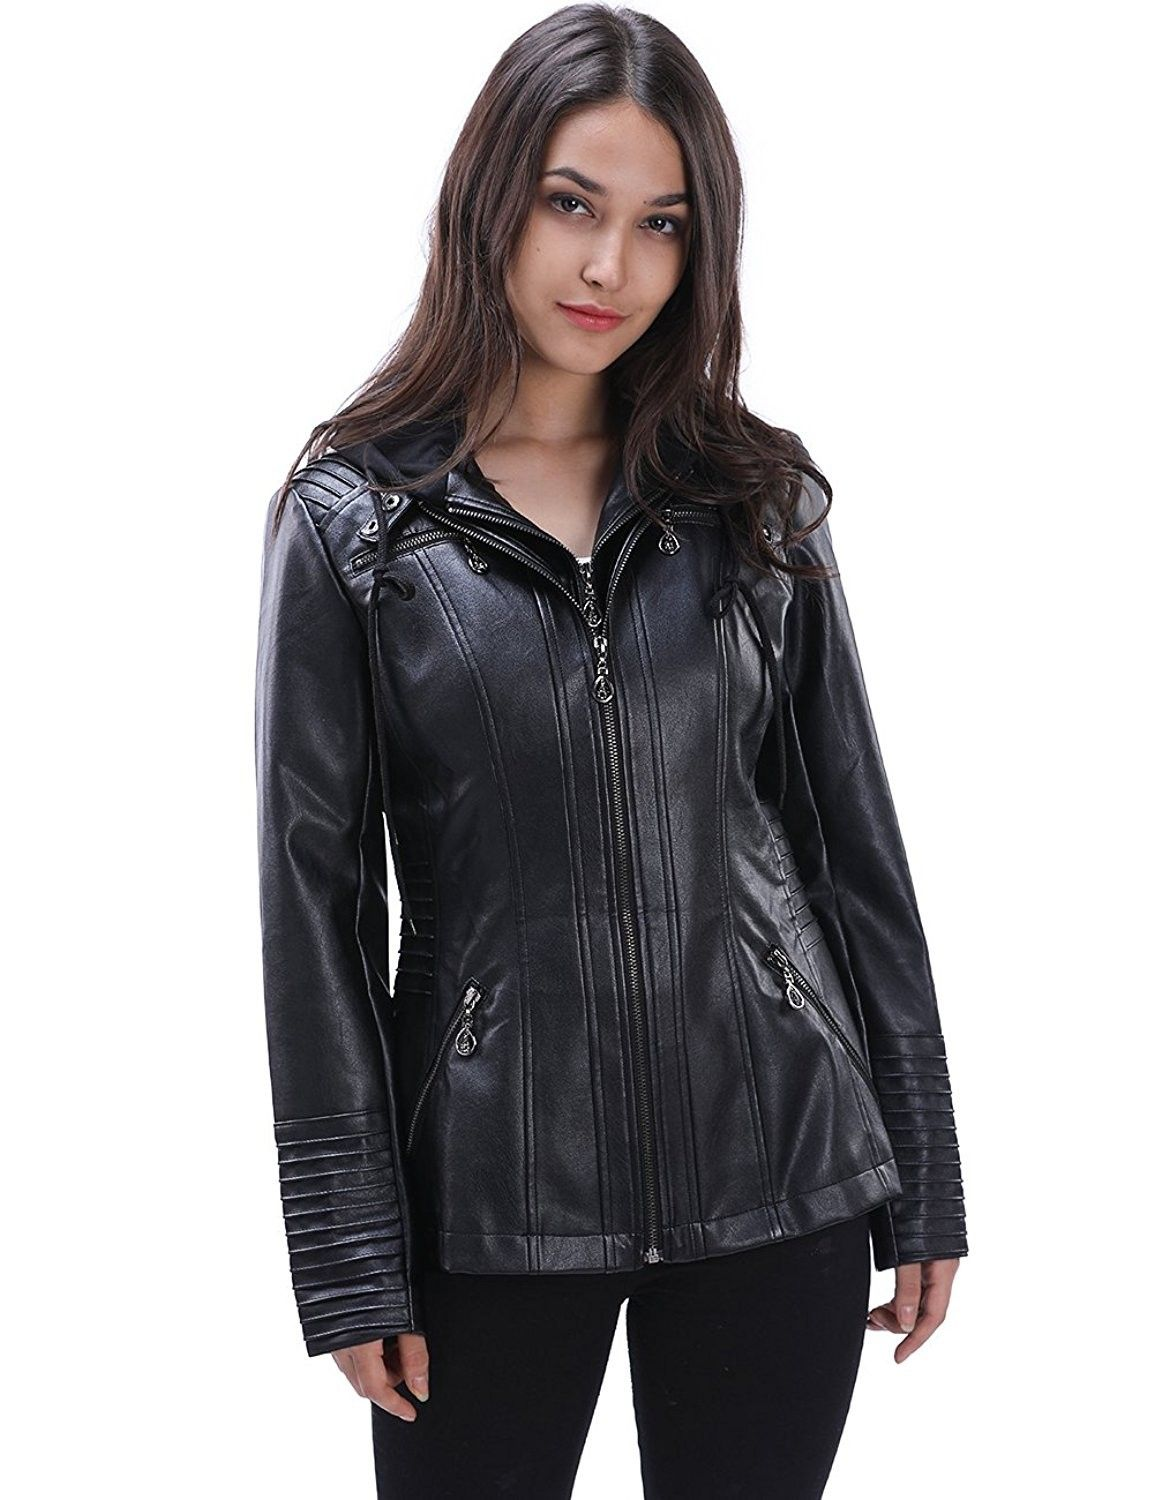 Women's Casual PU Leather Removable Zip Up Hooded Faux